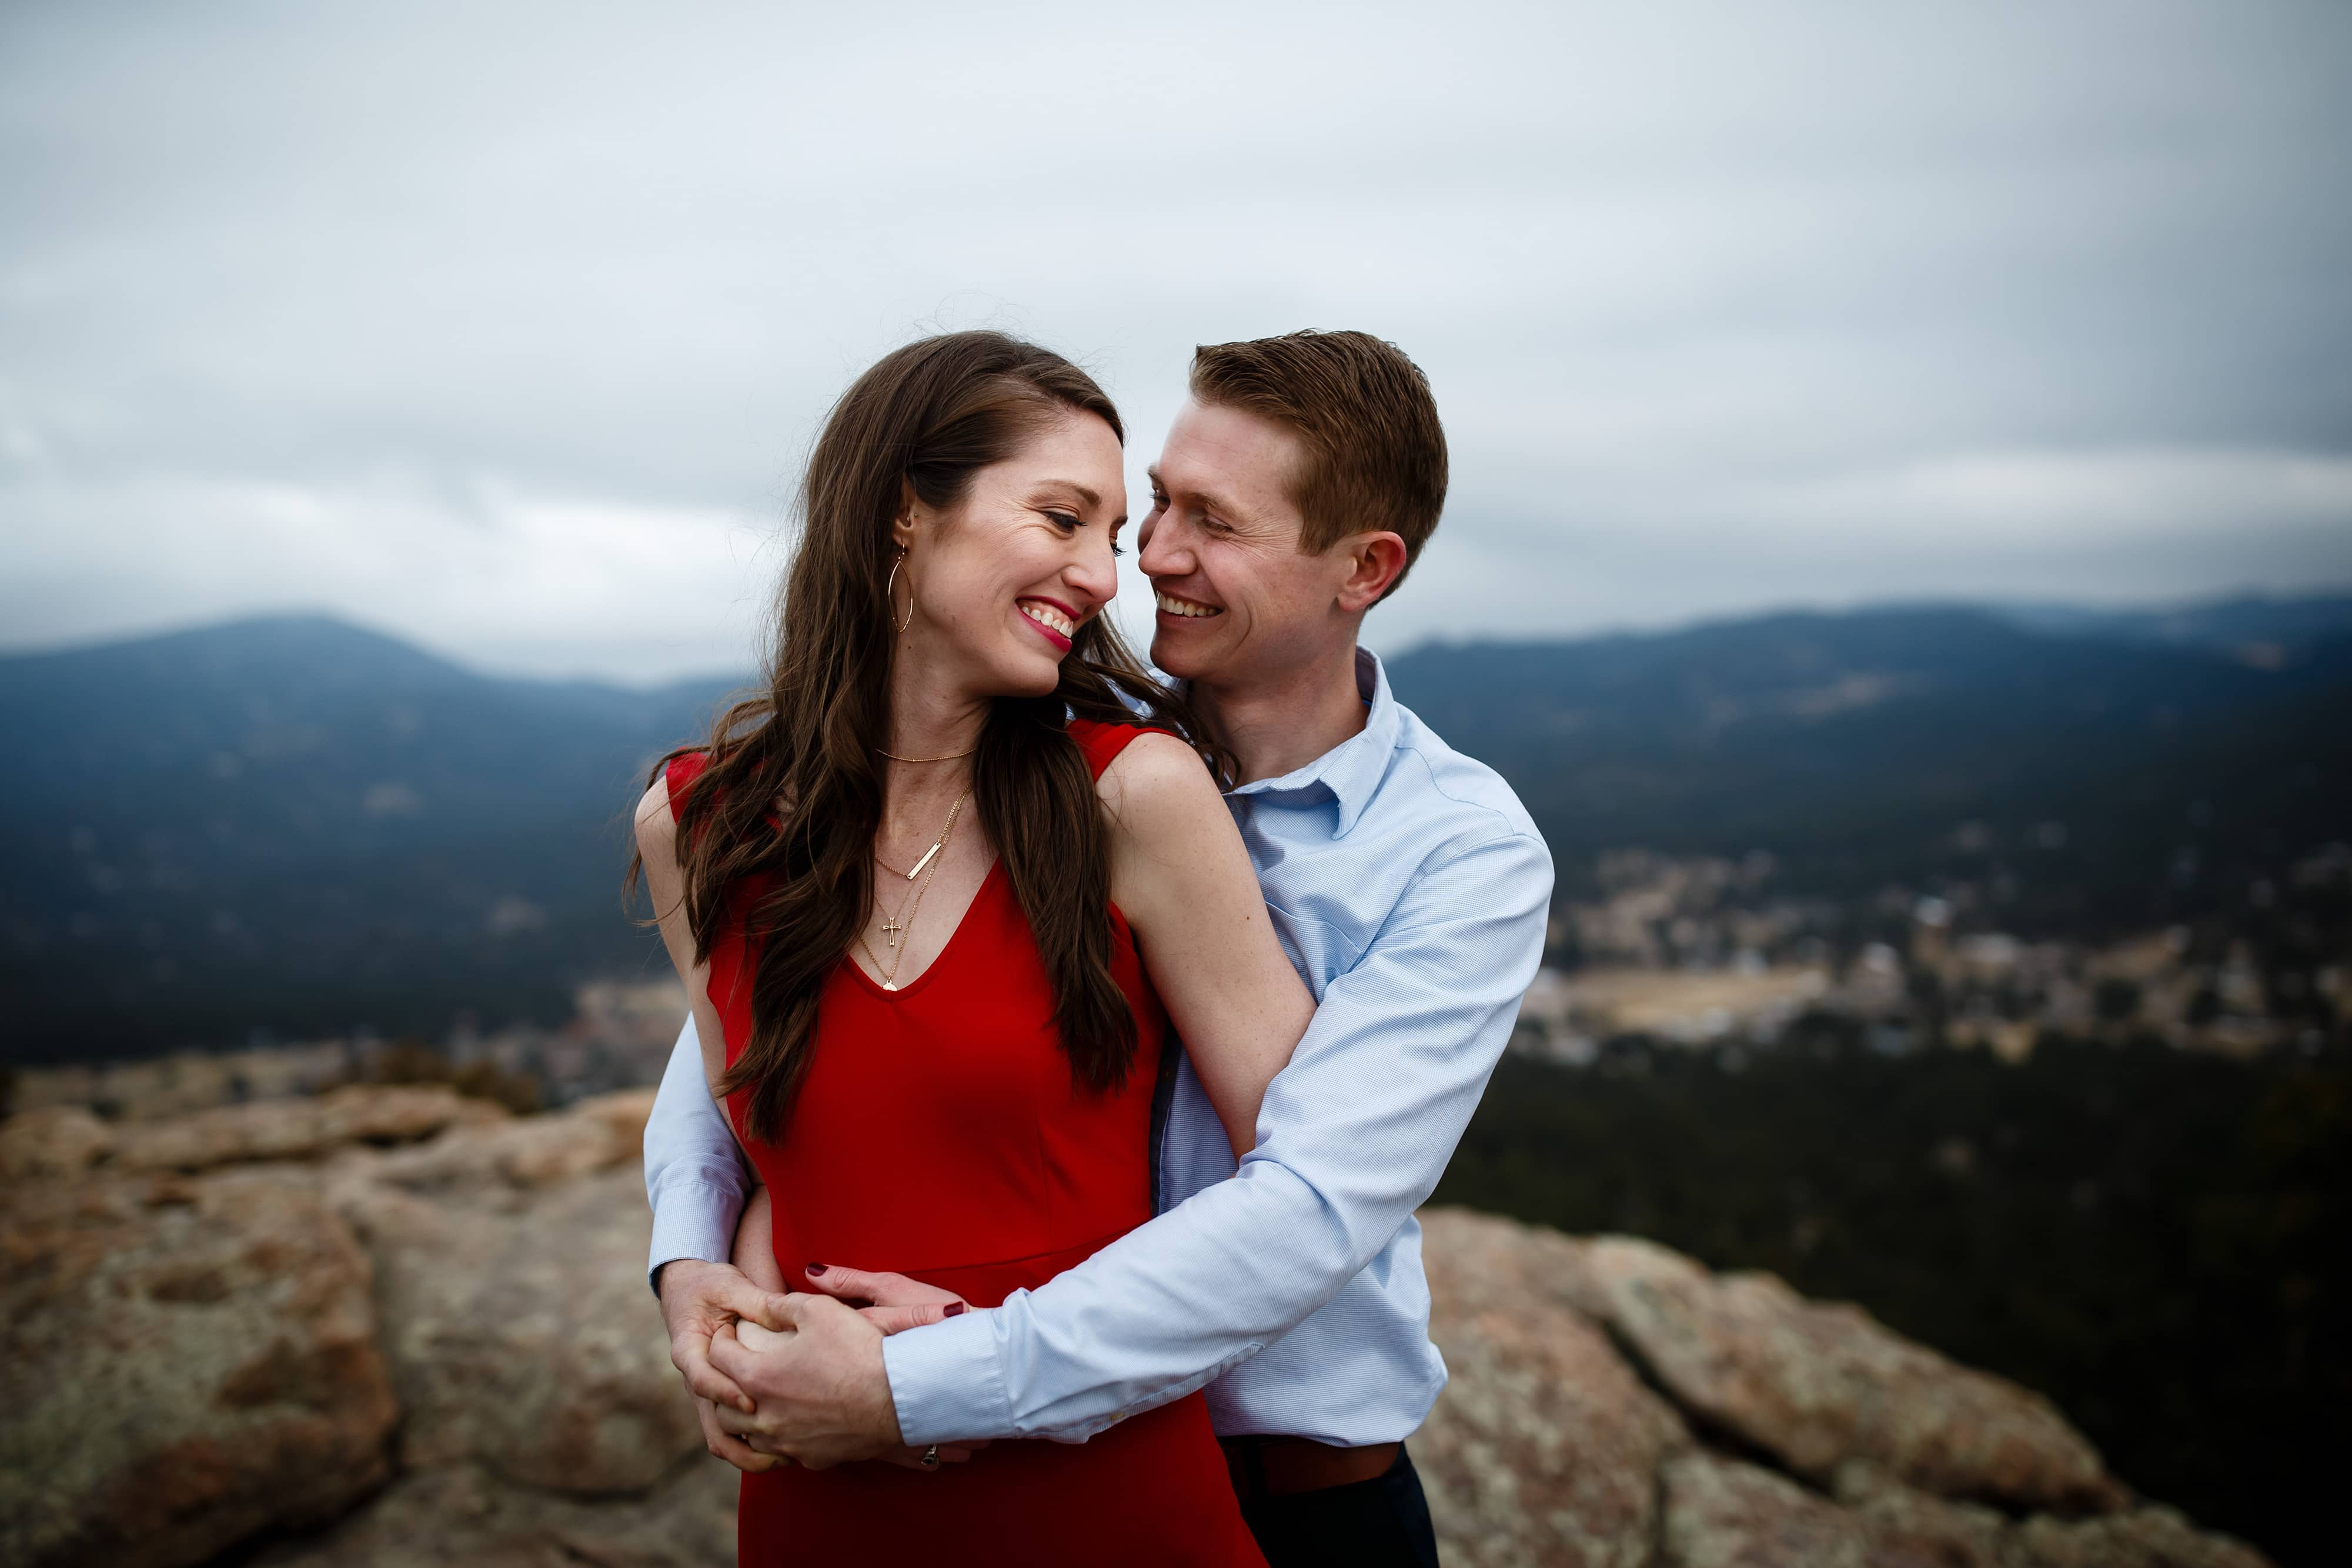 James hugs Hannah on Brother's Lookout at Alderfer Three Sister's Park during their Evergreen engagement session